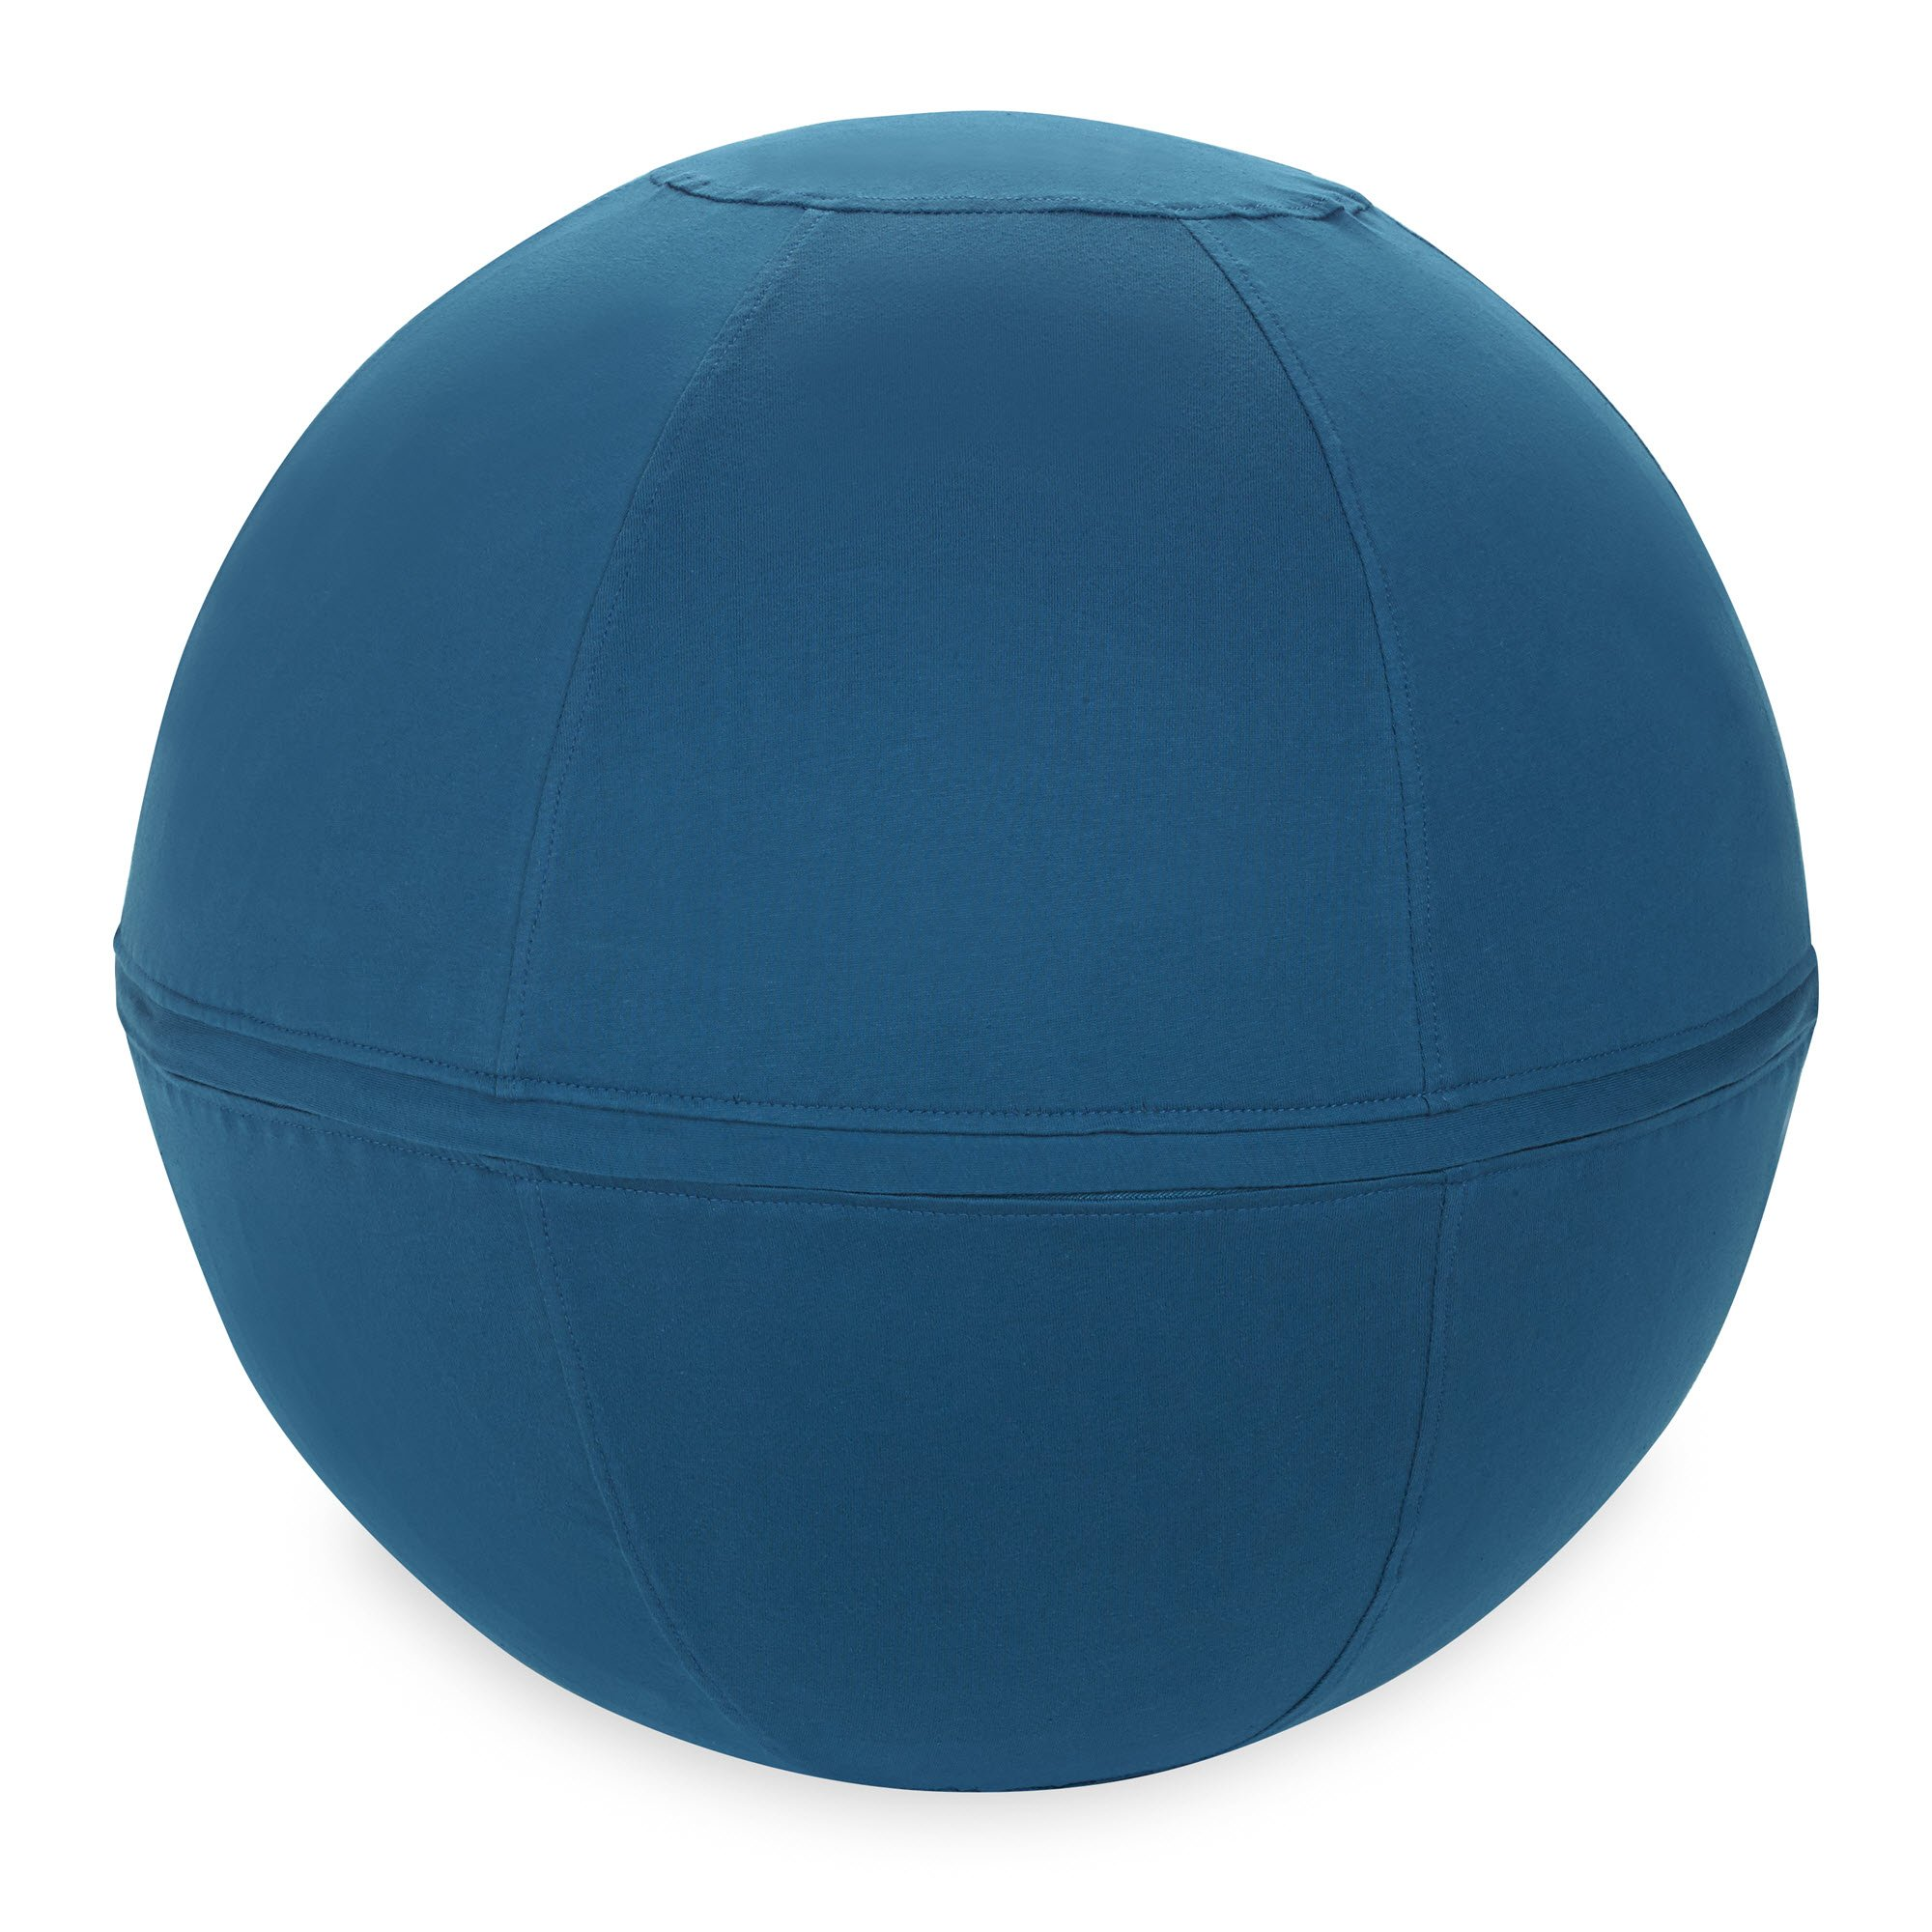 Gaiam Classic Balance Ball Chair Ball Cover, Twilight by Gaiam (Image #1)